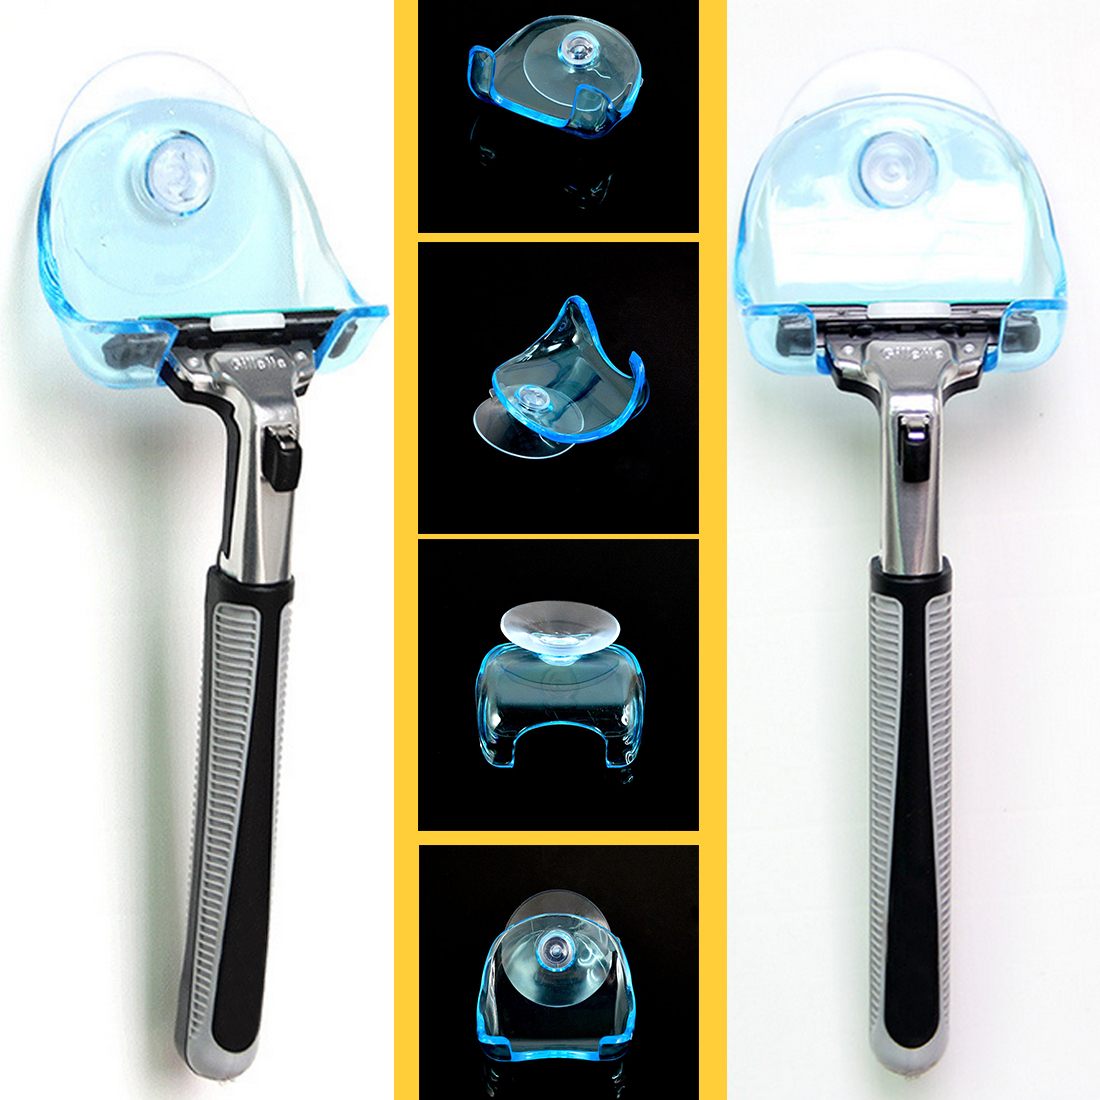 1Pcs Clear Blue Plastic Super Suction Cup Razor Rack Bathroom Razor Holder Suction Cup Shaver